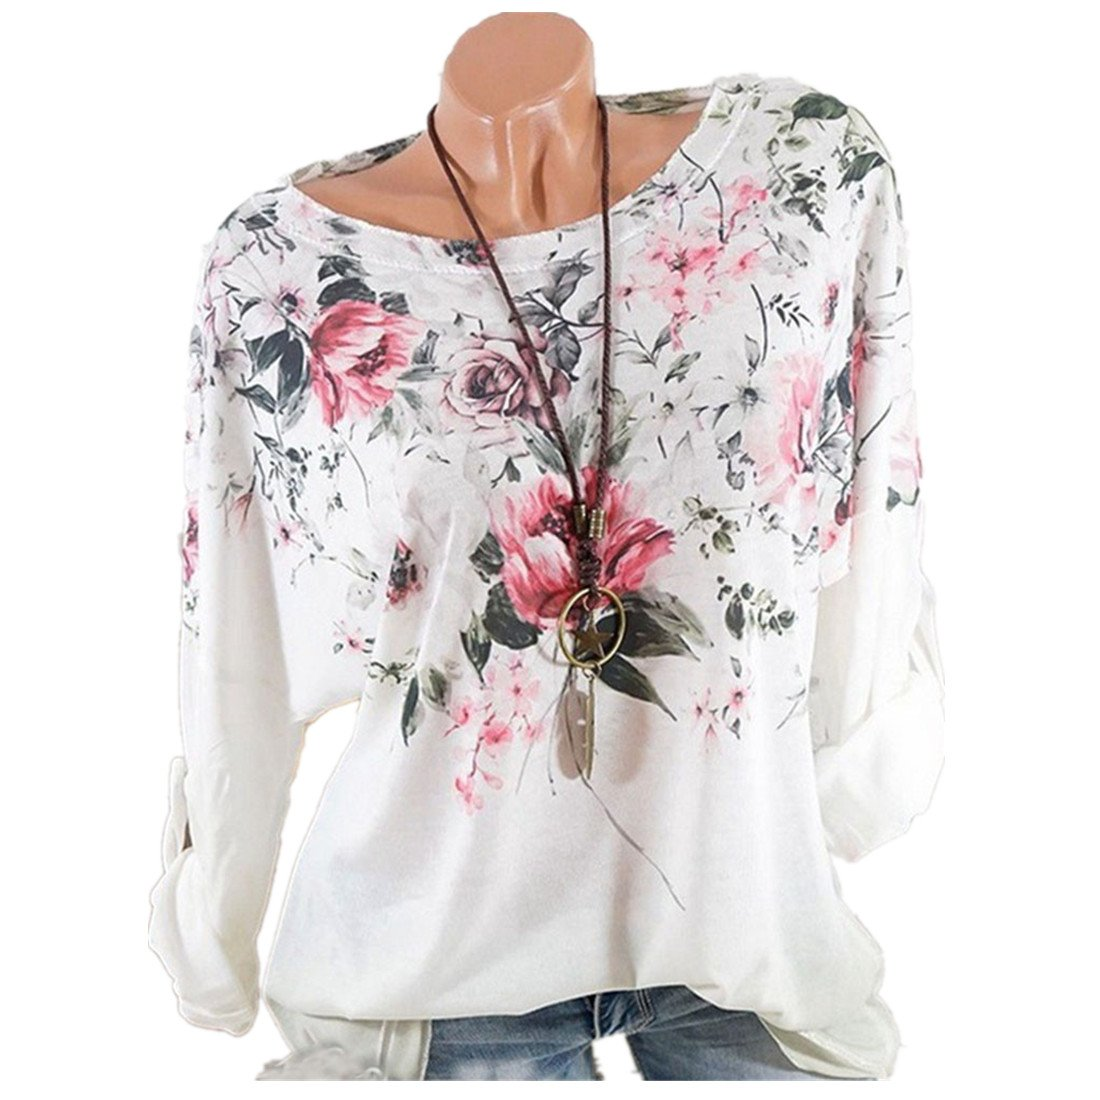 a7e5f6dfd6c41 ❊Material Polyester♥♥Women s summer off shoulder blouses long sleeves sexy tops  chiffon ruffles casual t shirt women s v neck ruched sleeveless sexy ...